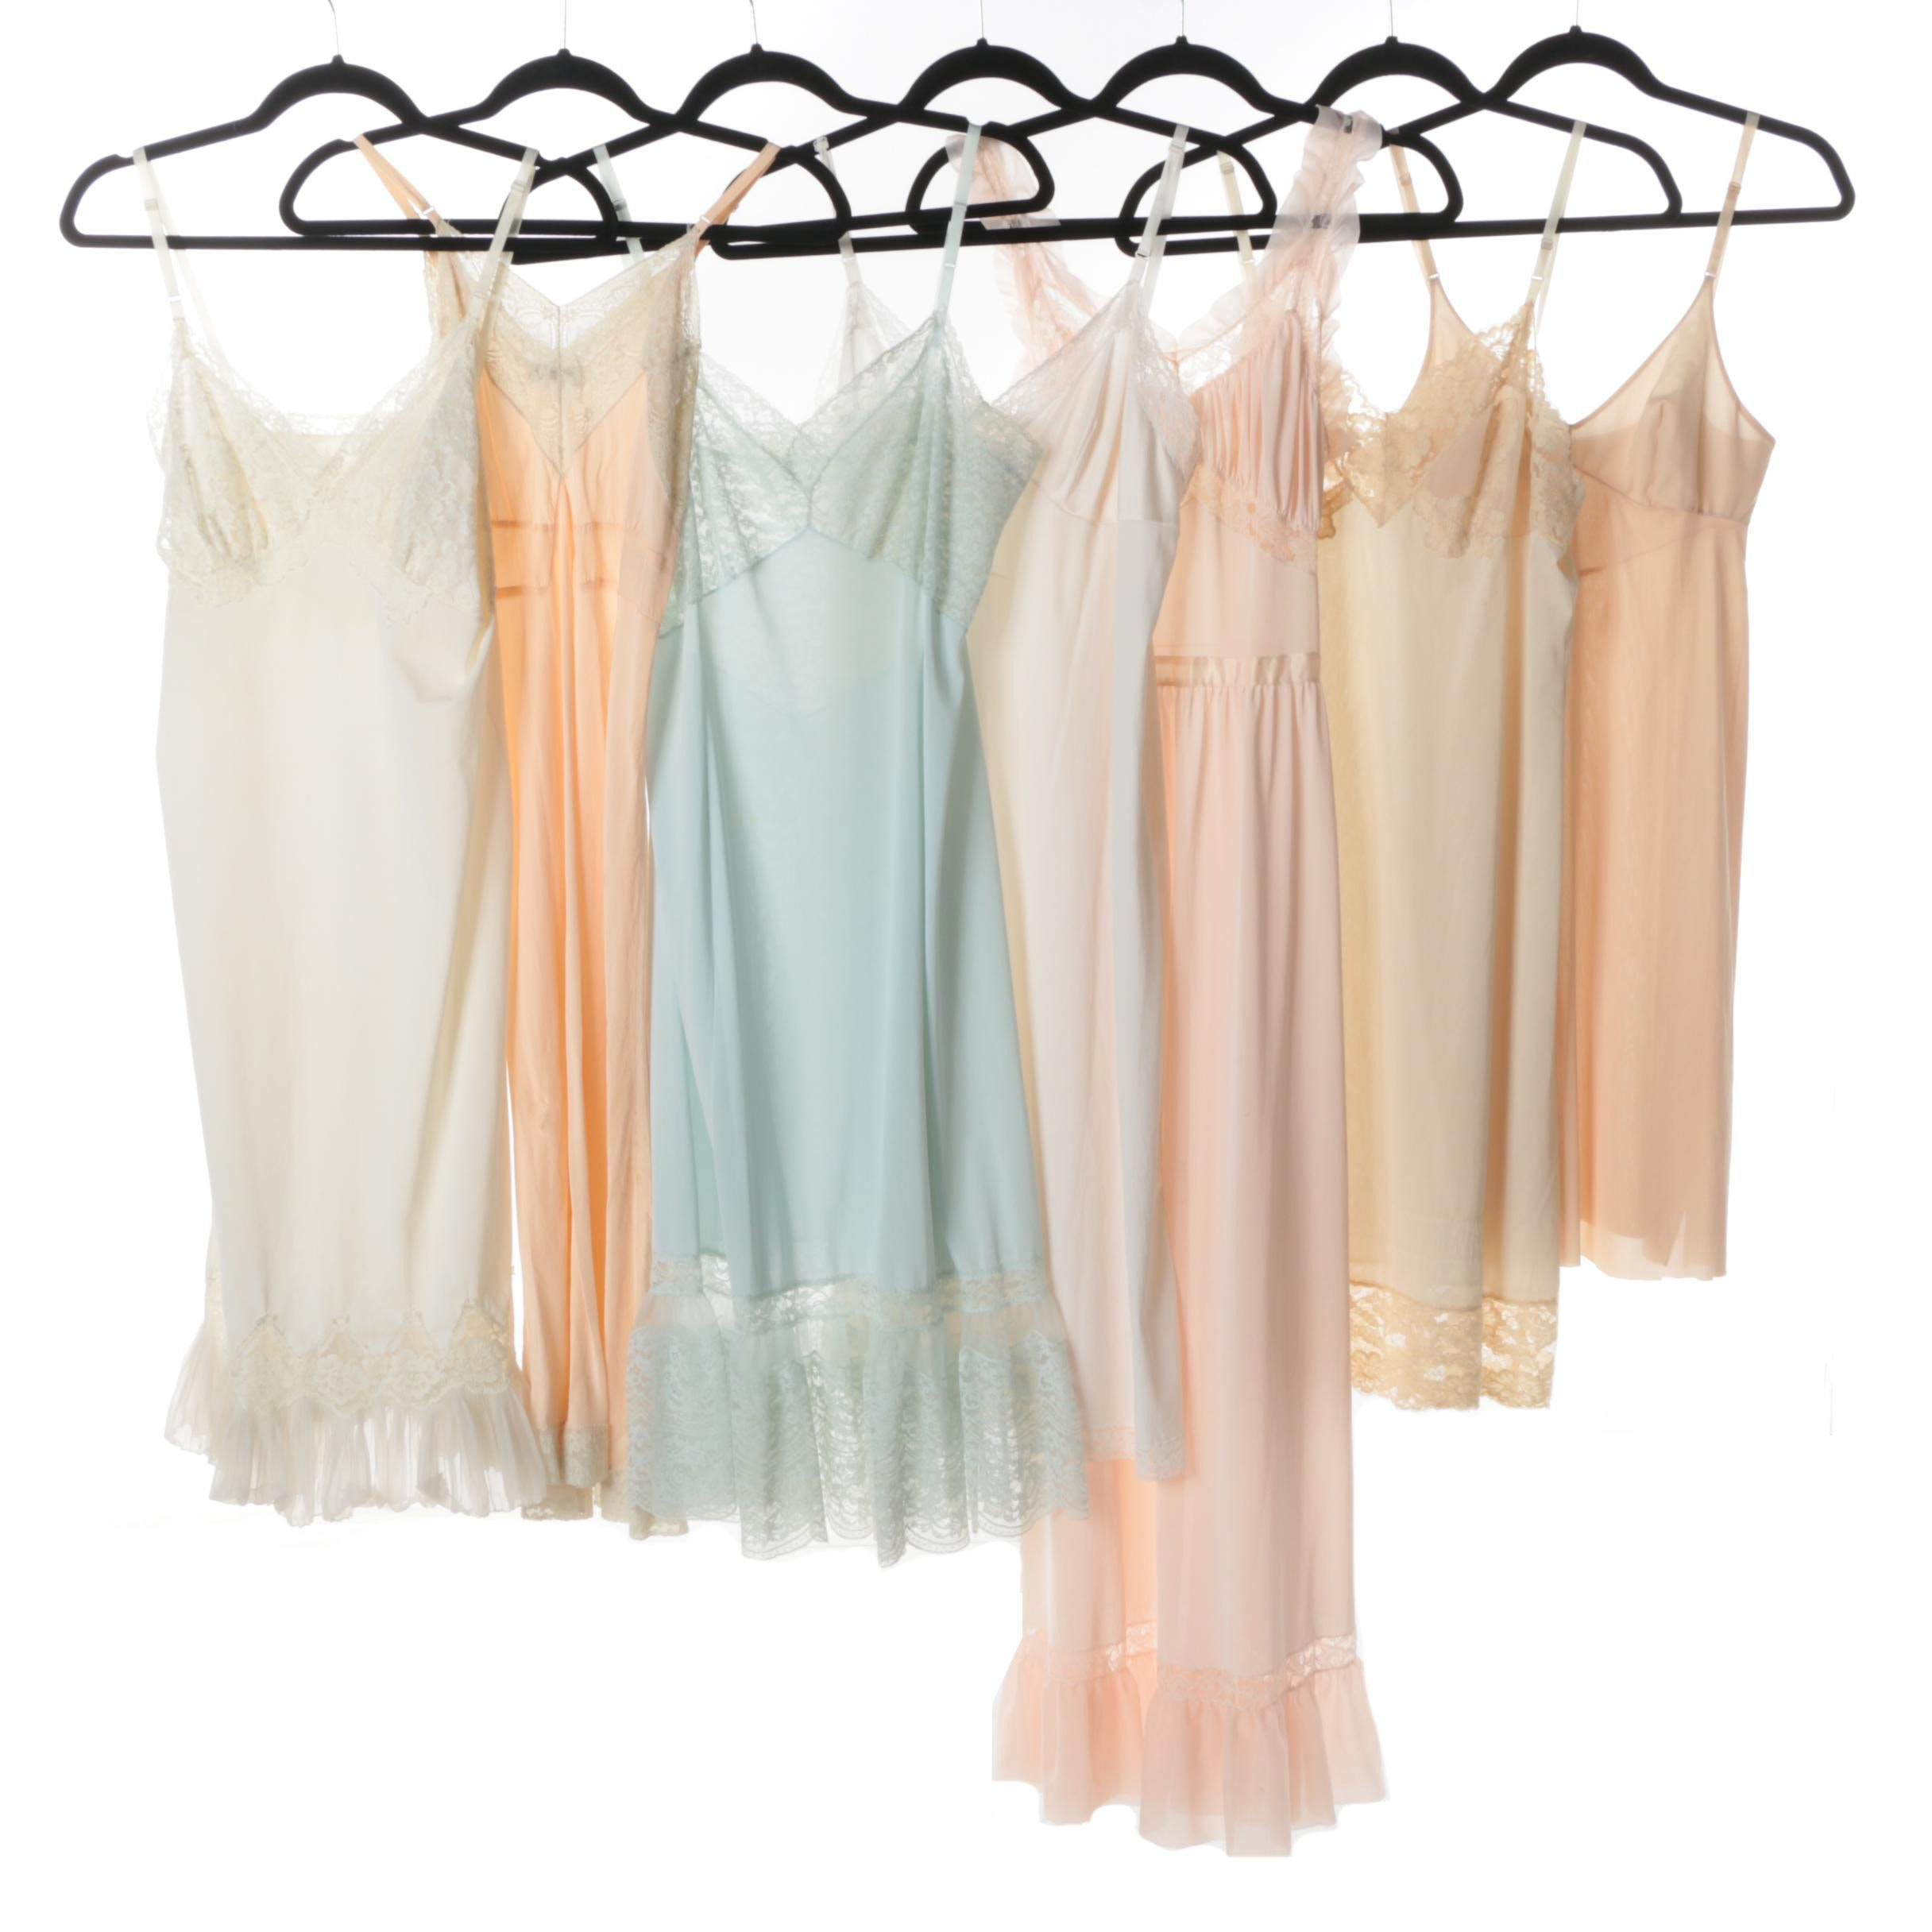 Vintage Slips and Nightgowns